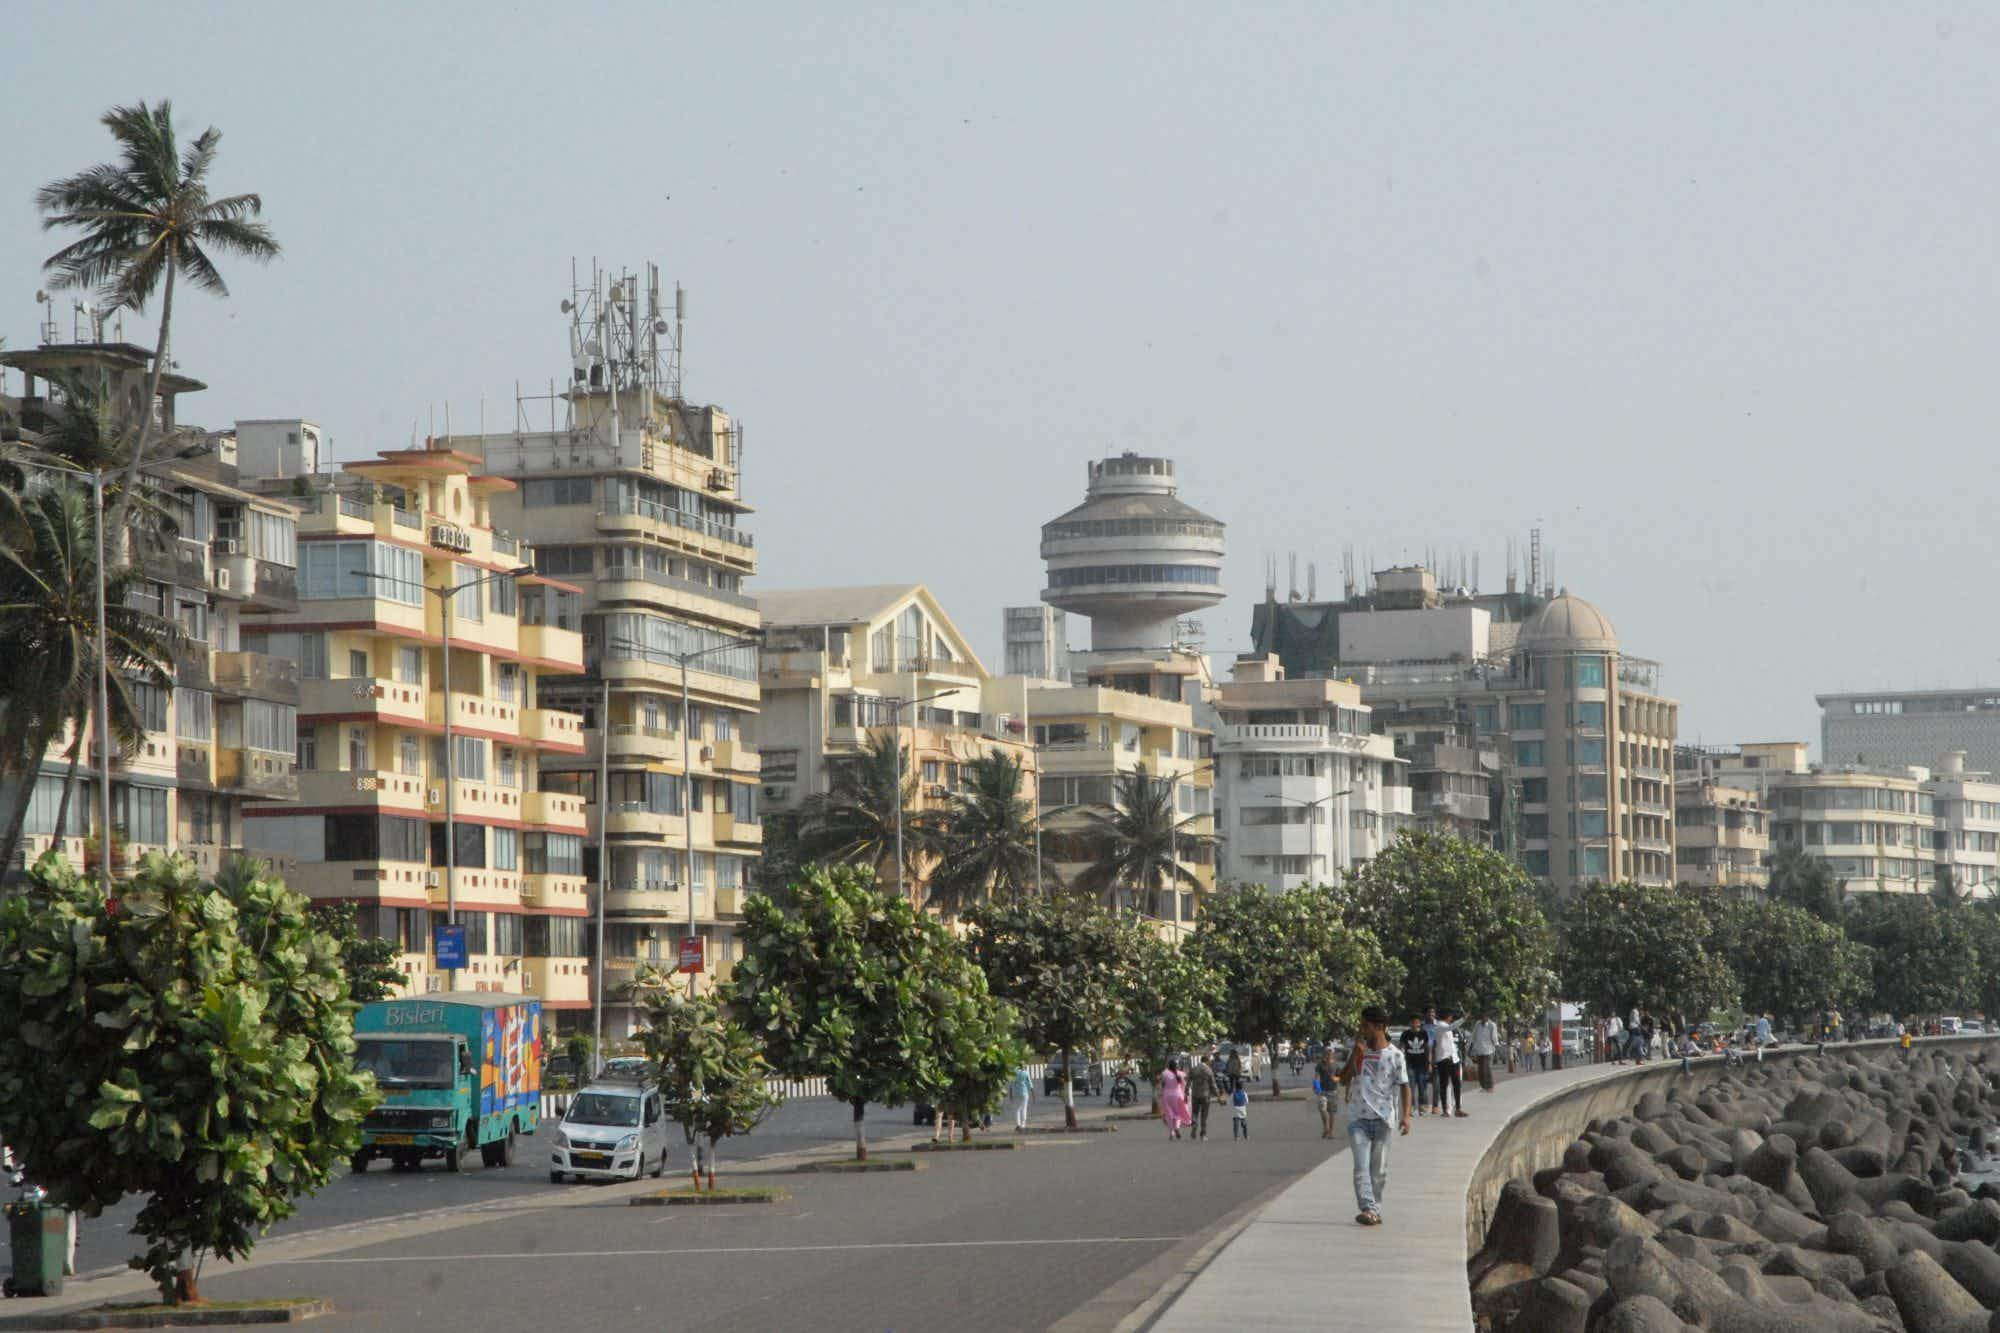 Mumbai hopes to preserve its stunning Art Deco architecture as it begins a survey of the historic buildings